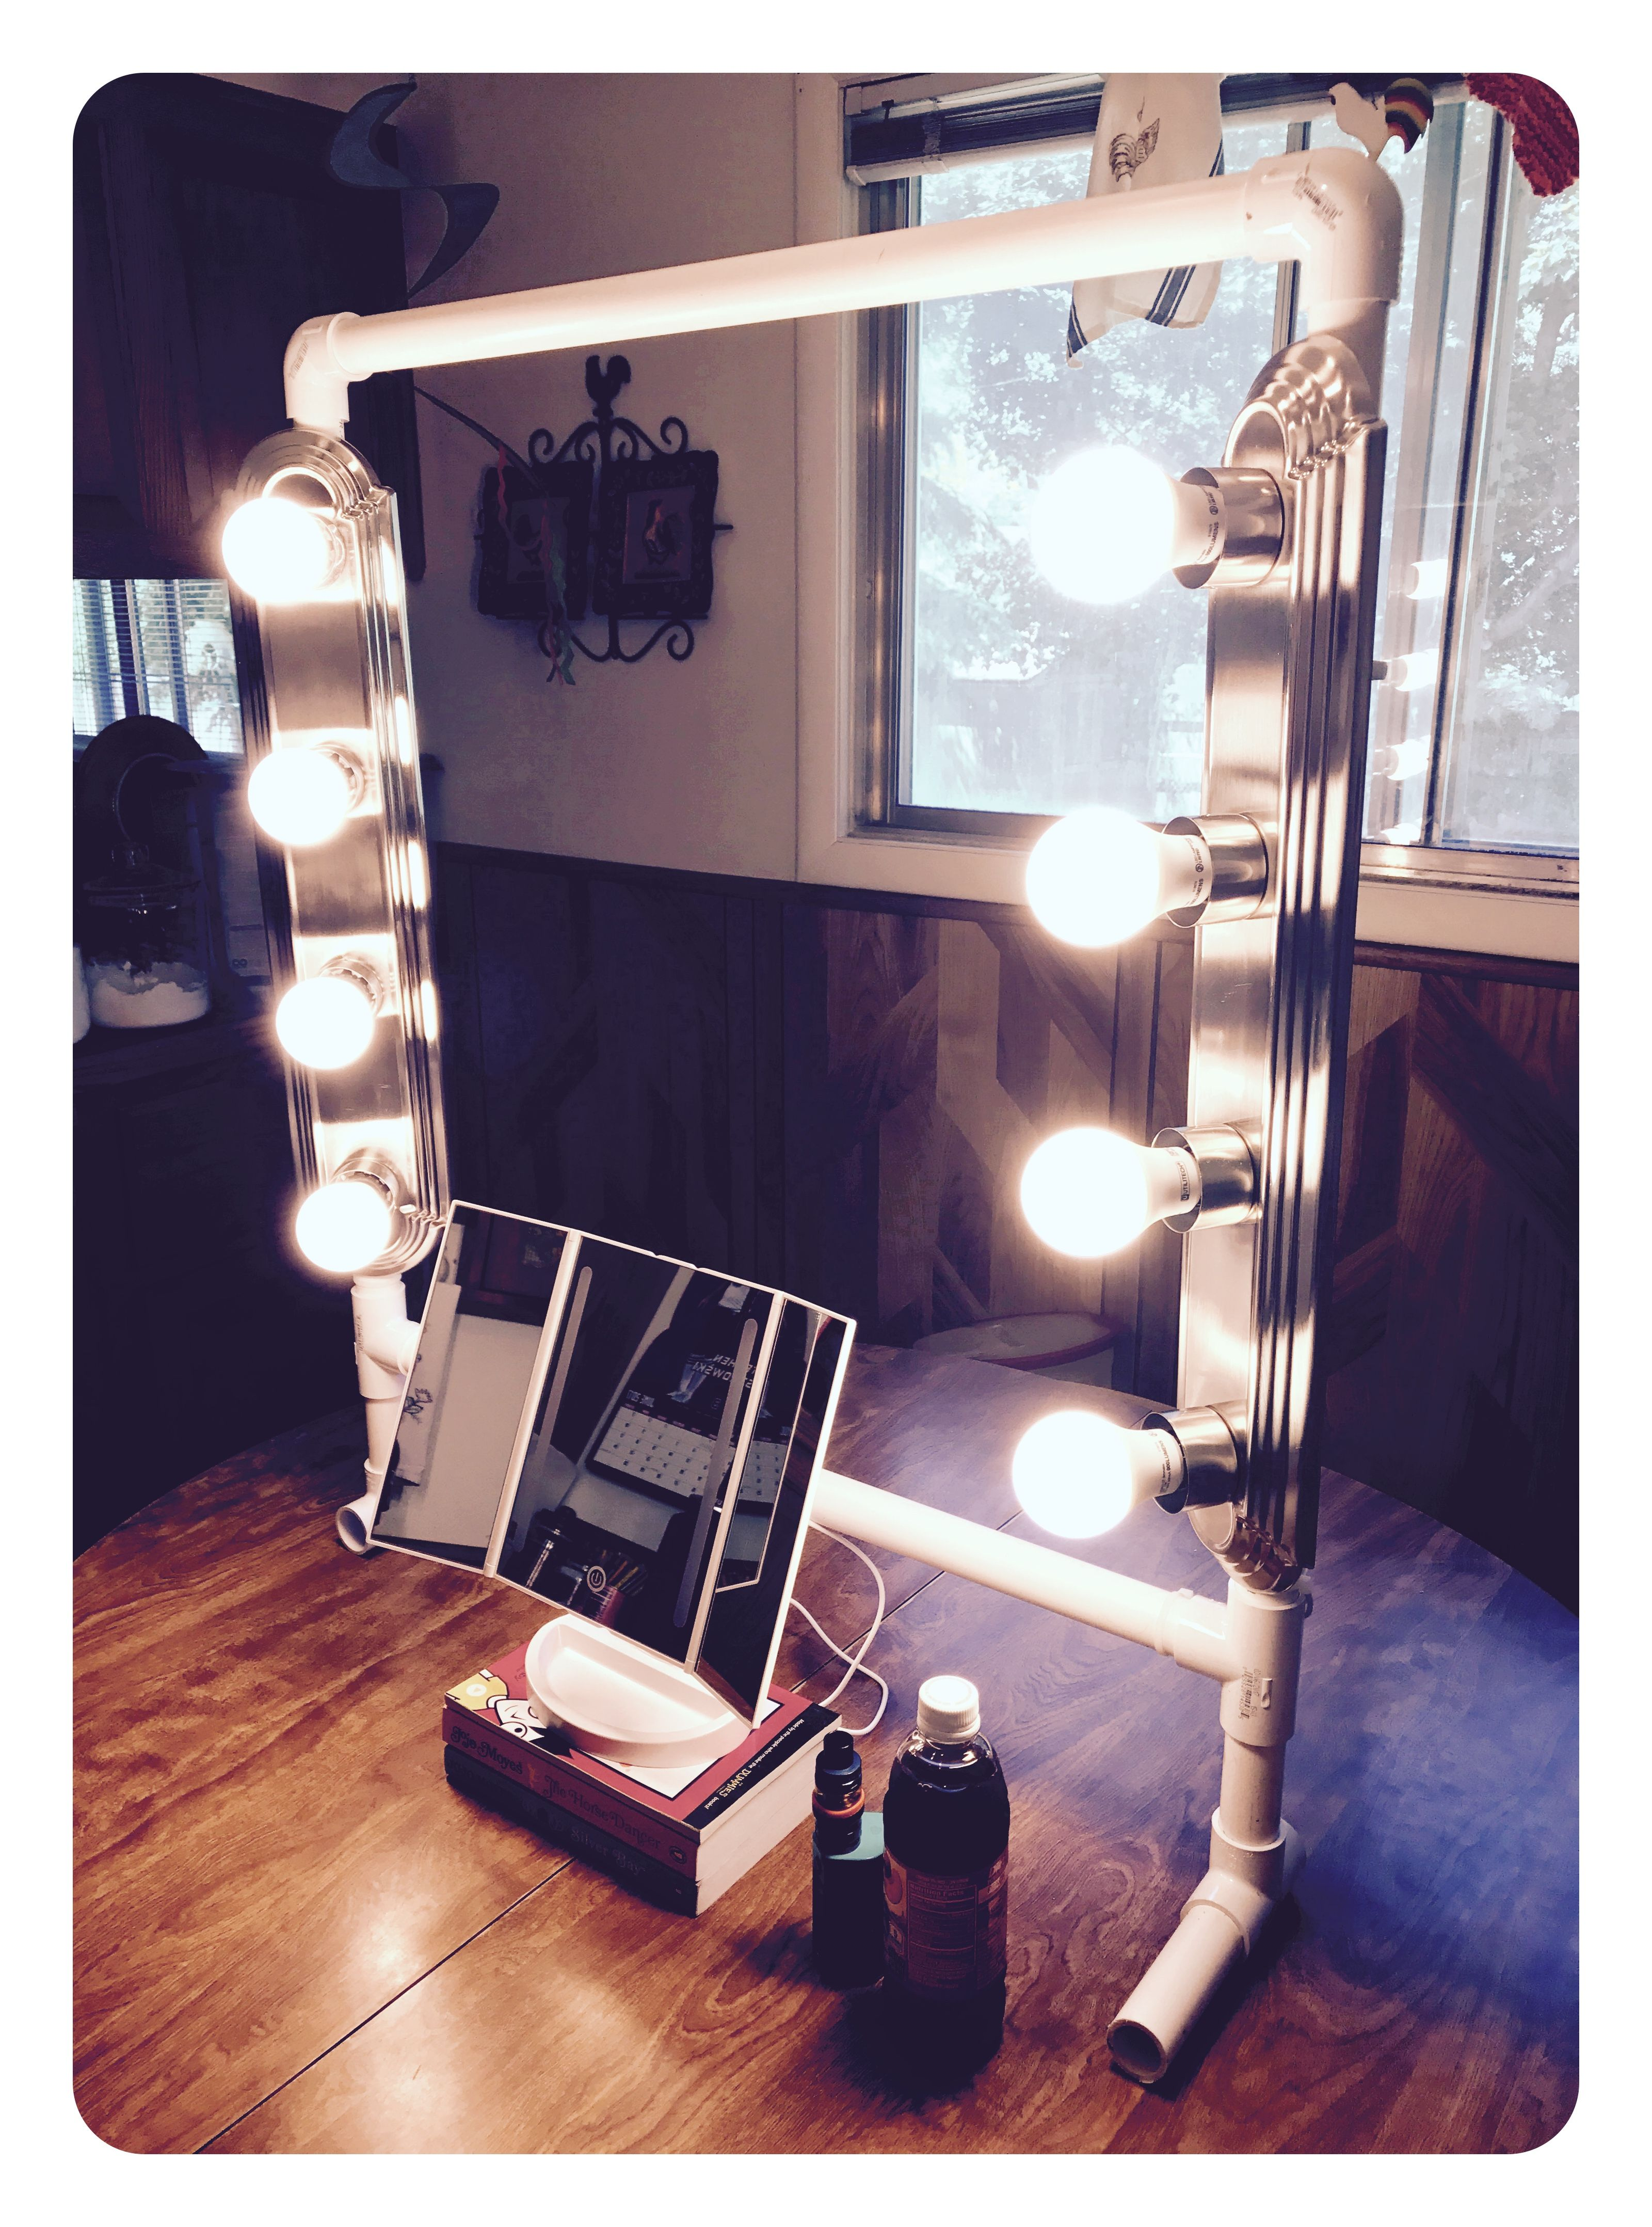 Diy Vanity Light Bar With An Outlet Plugin Makeup Vanity Lighting Vanity Light Bar Makeup Vanity